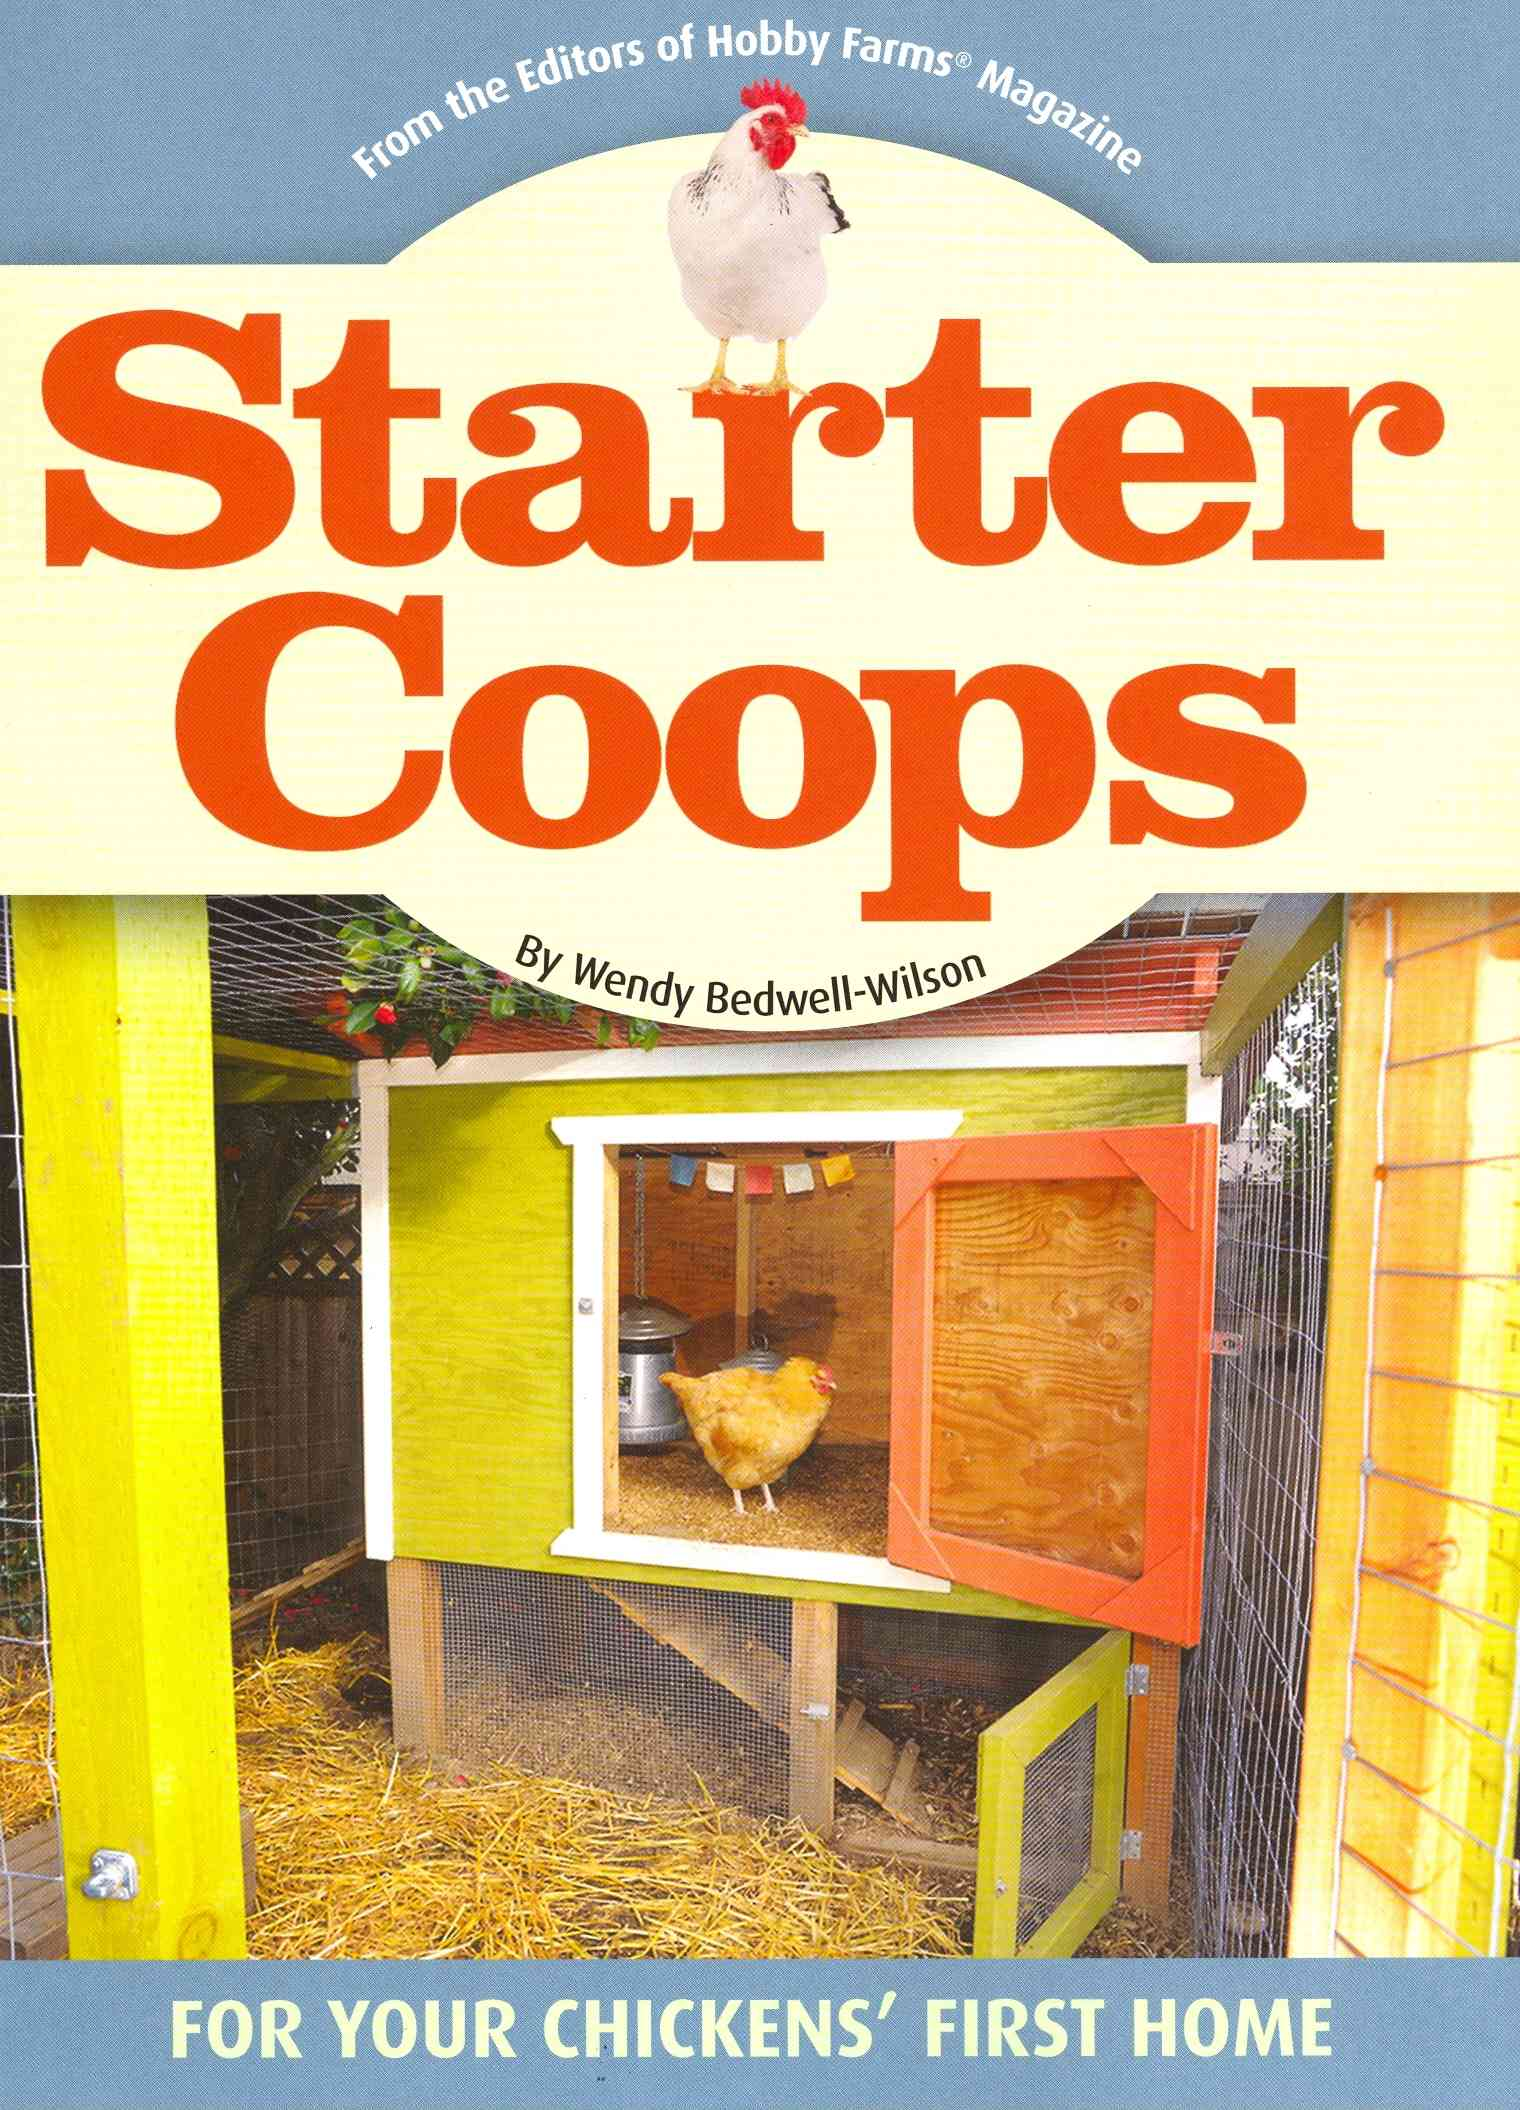 Chicken Coops By Bedwell-wilson, Wendy